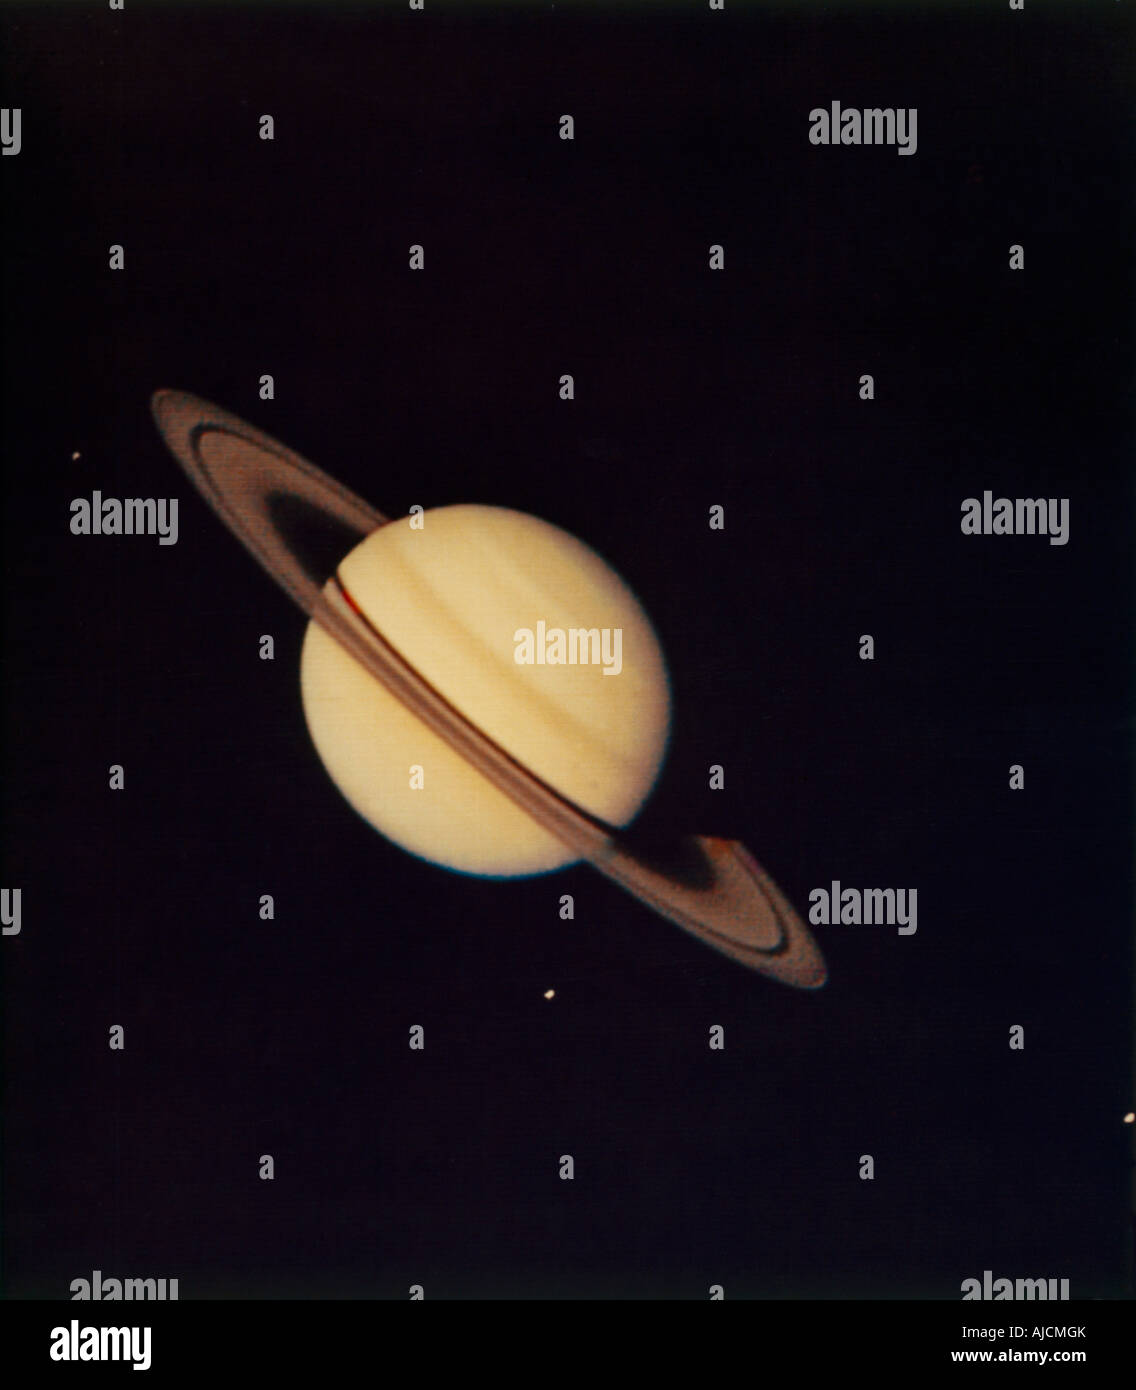 Saturn & Its Moons - Stock Image